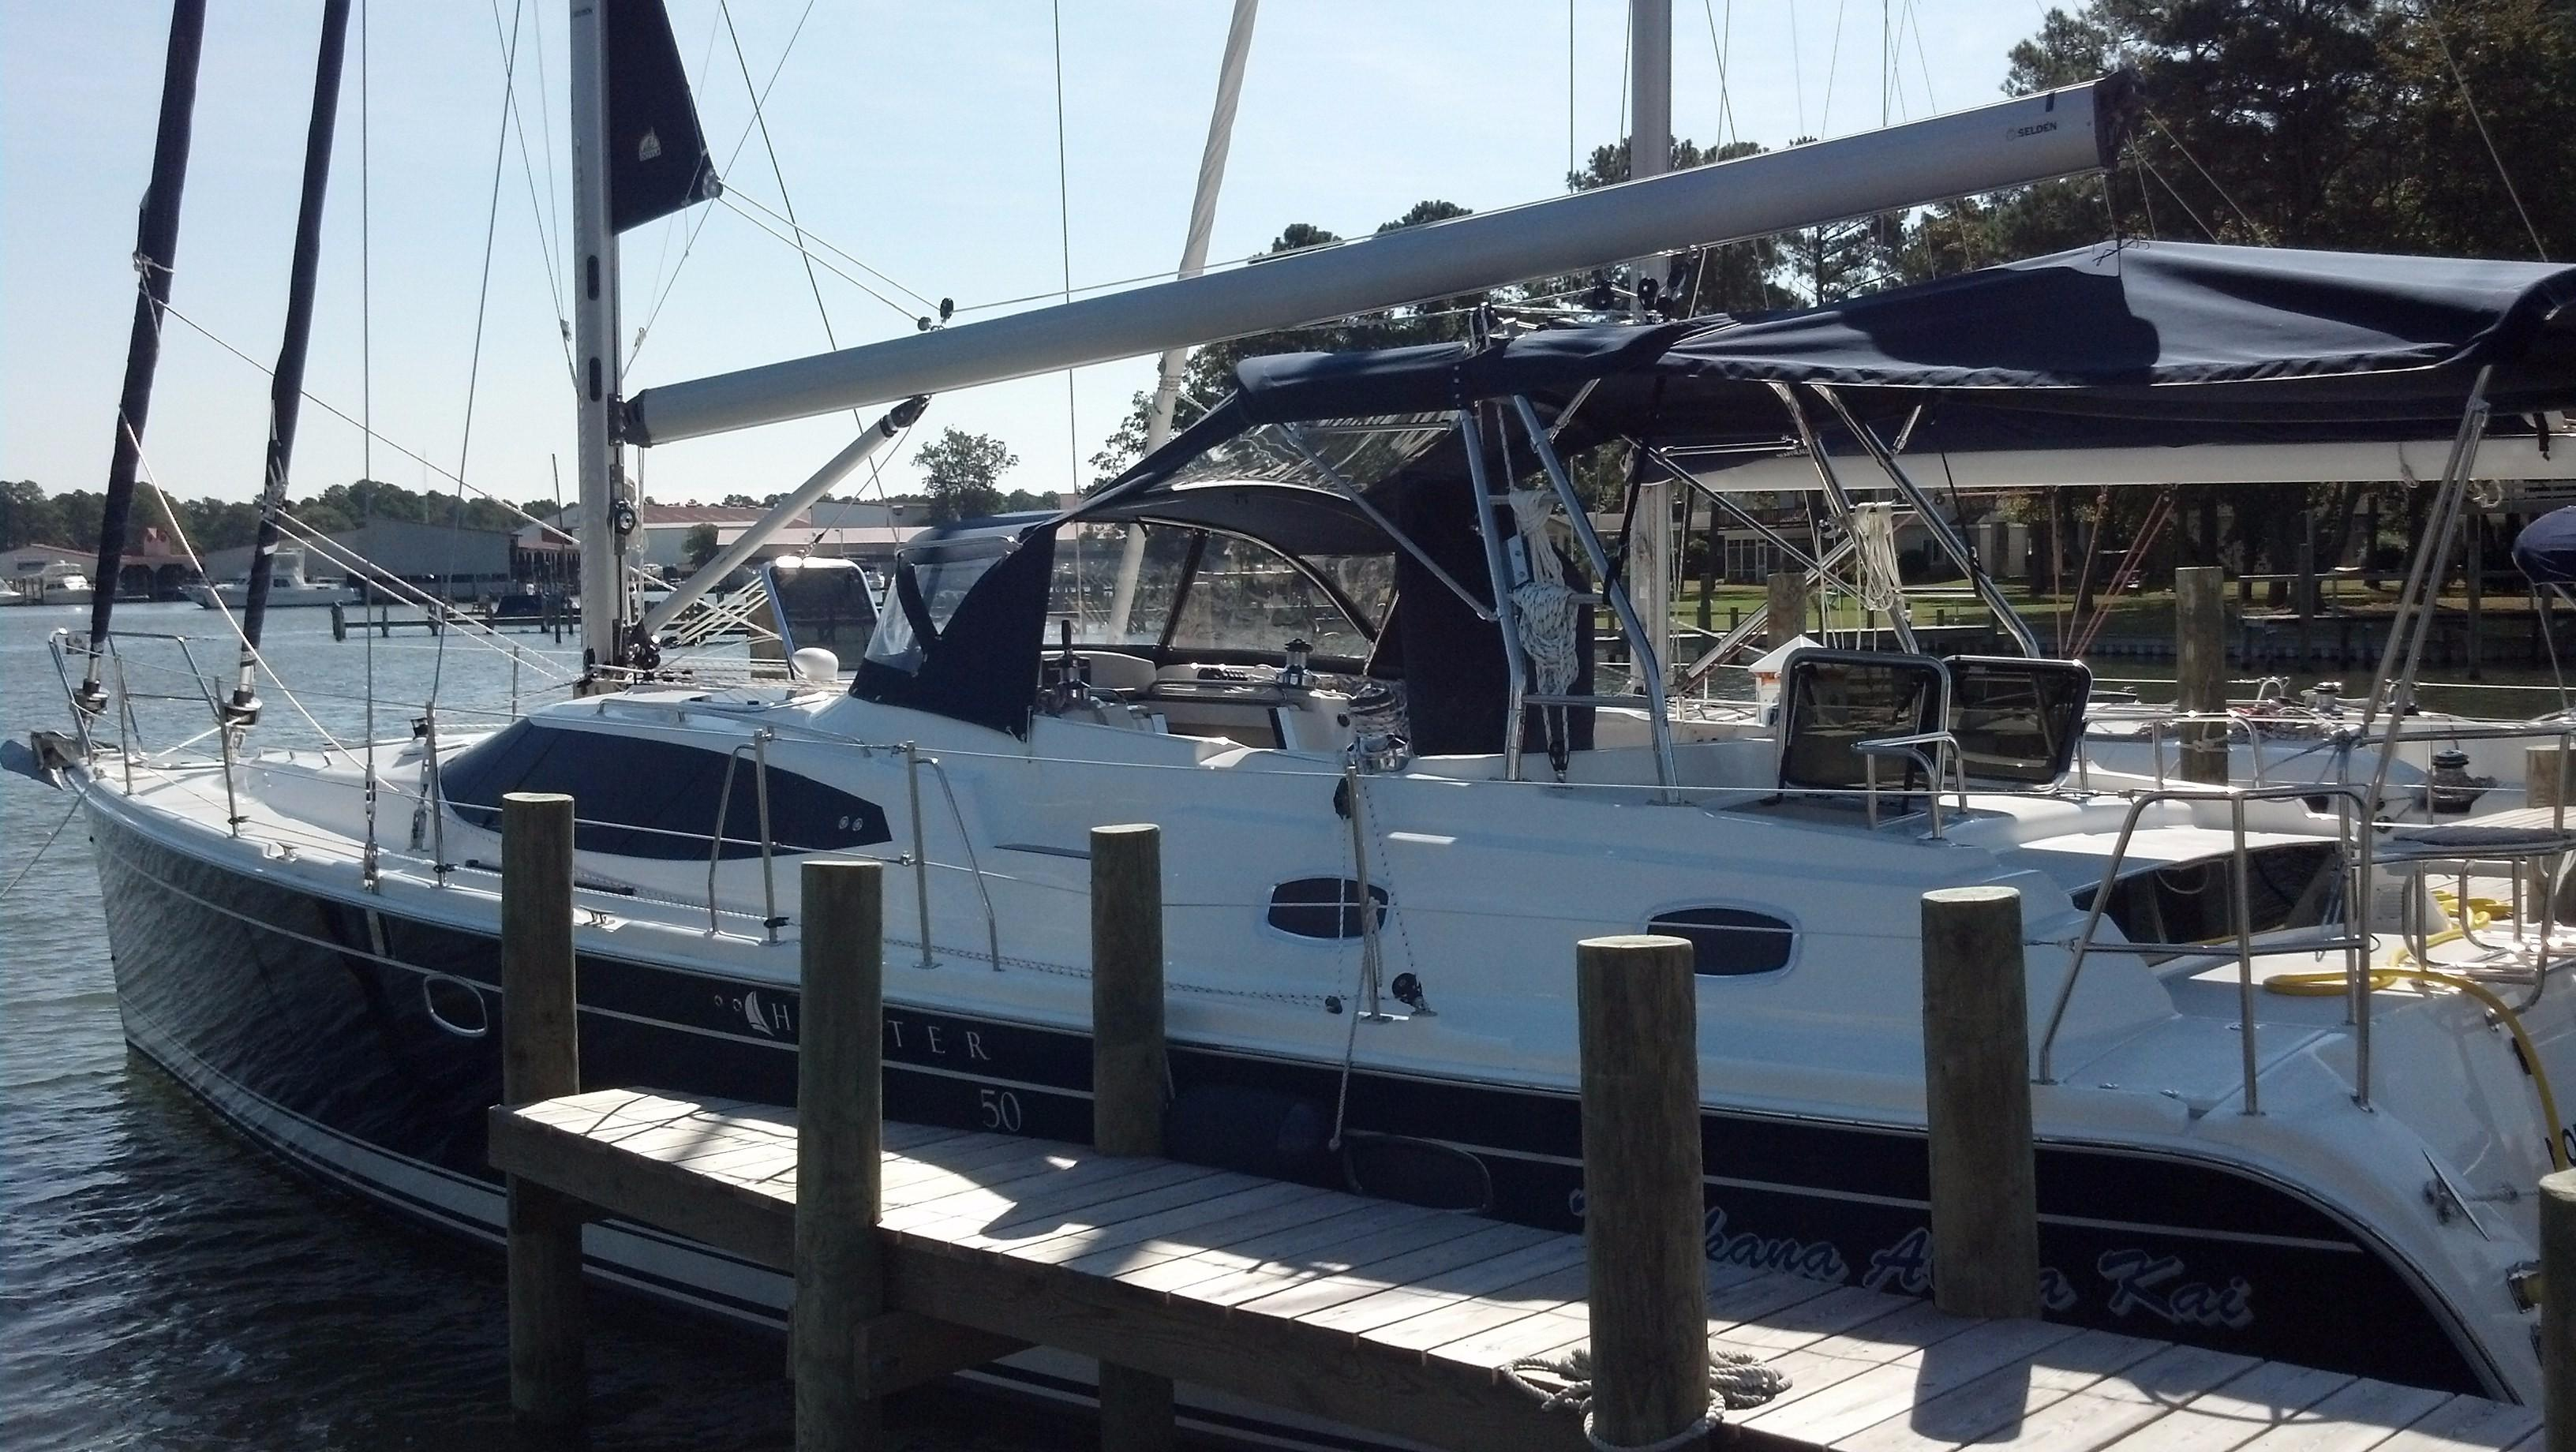 2013 Marlow Hunter 50 Center Cockpit | Sailboats for Sale